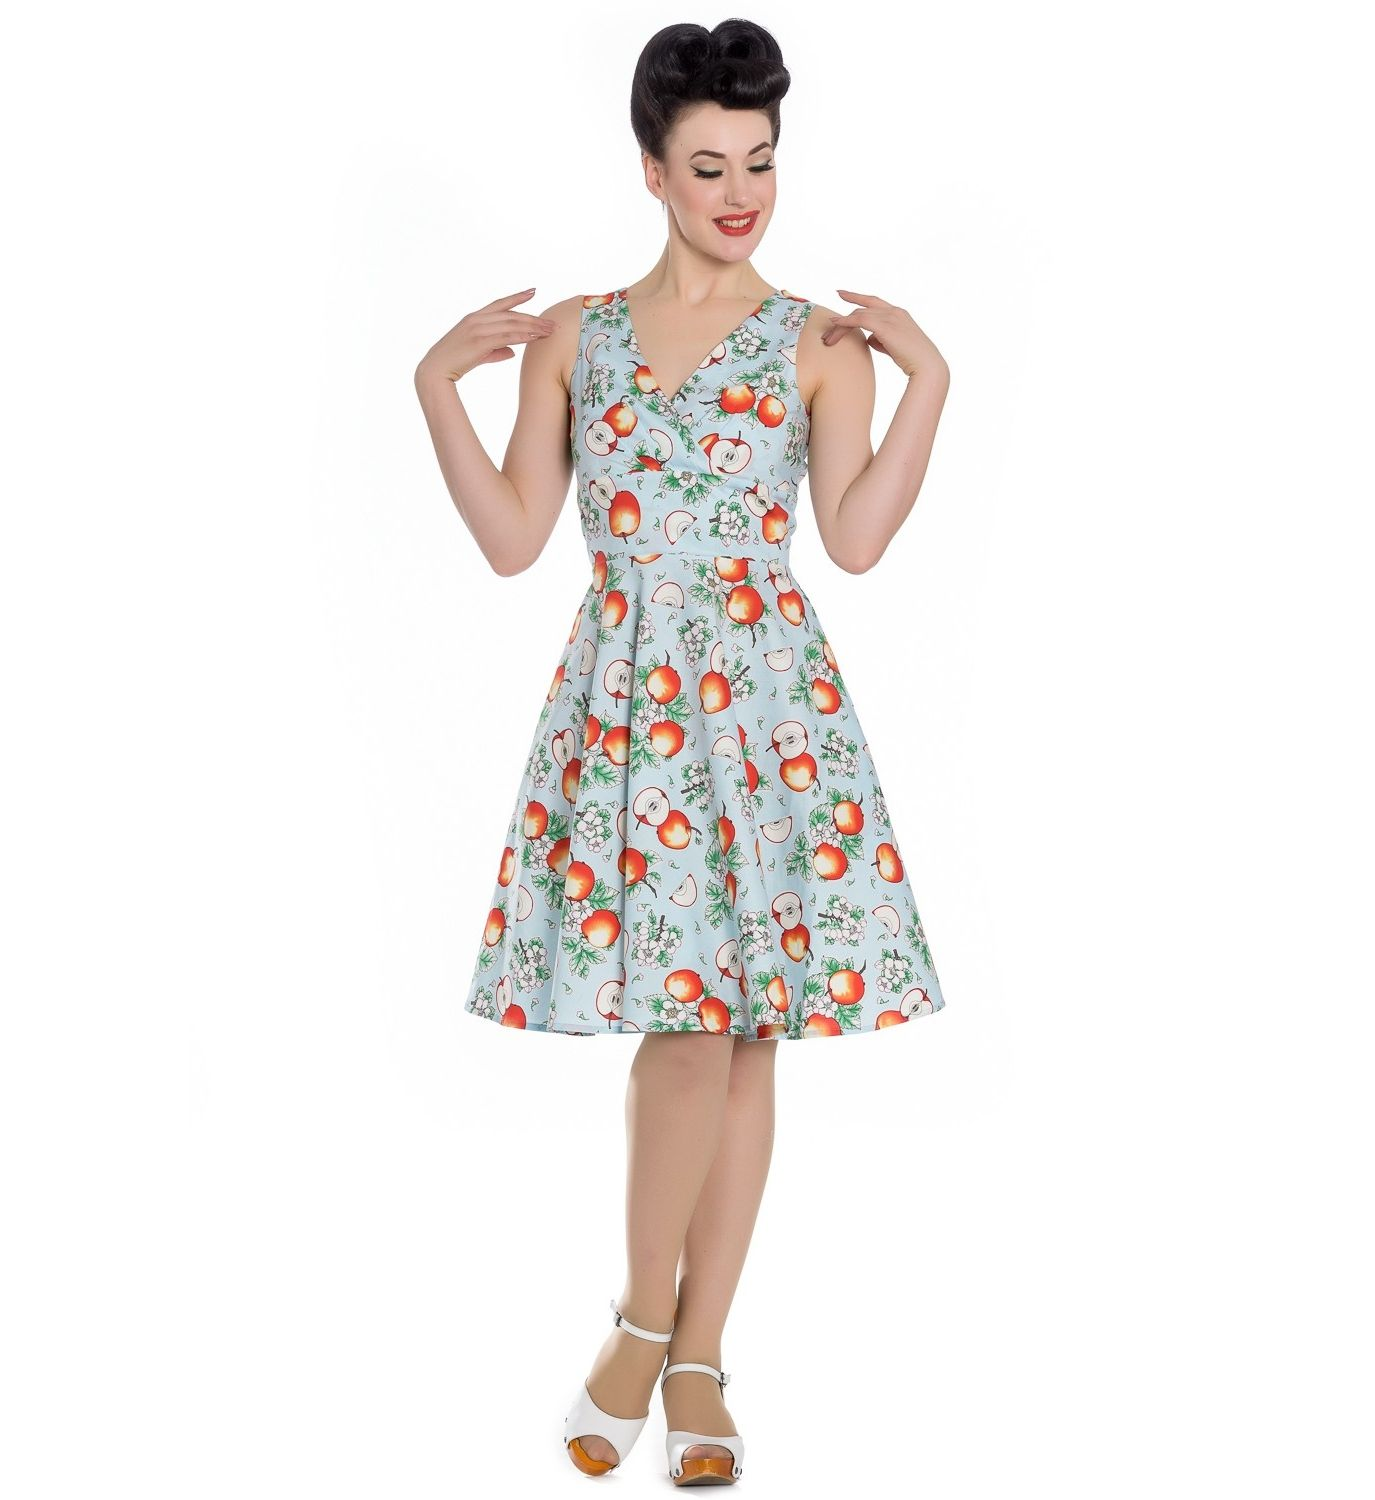 Plus Sizes    HELL BUNNY Blue Somerset Apple 50s Dress - + Inspired  Insanity + Clothing for 50s Rockabilly Dolls  2318f83b7b95